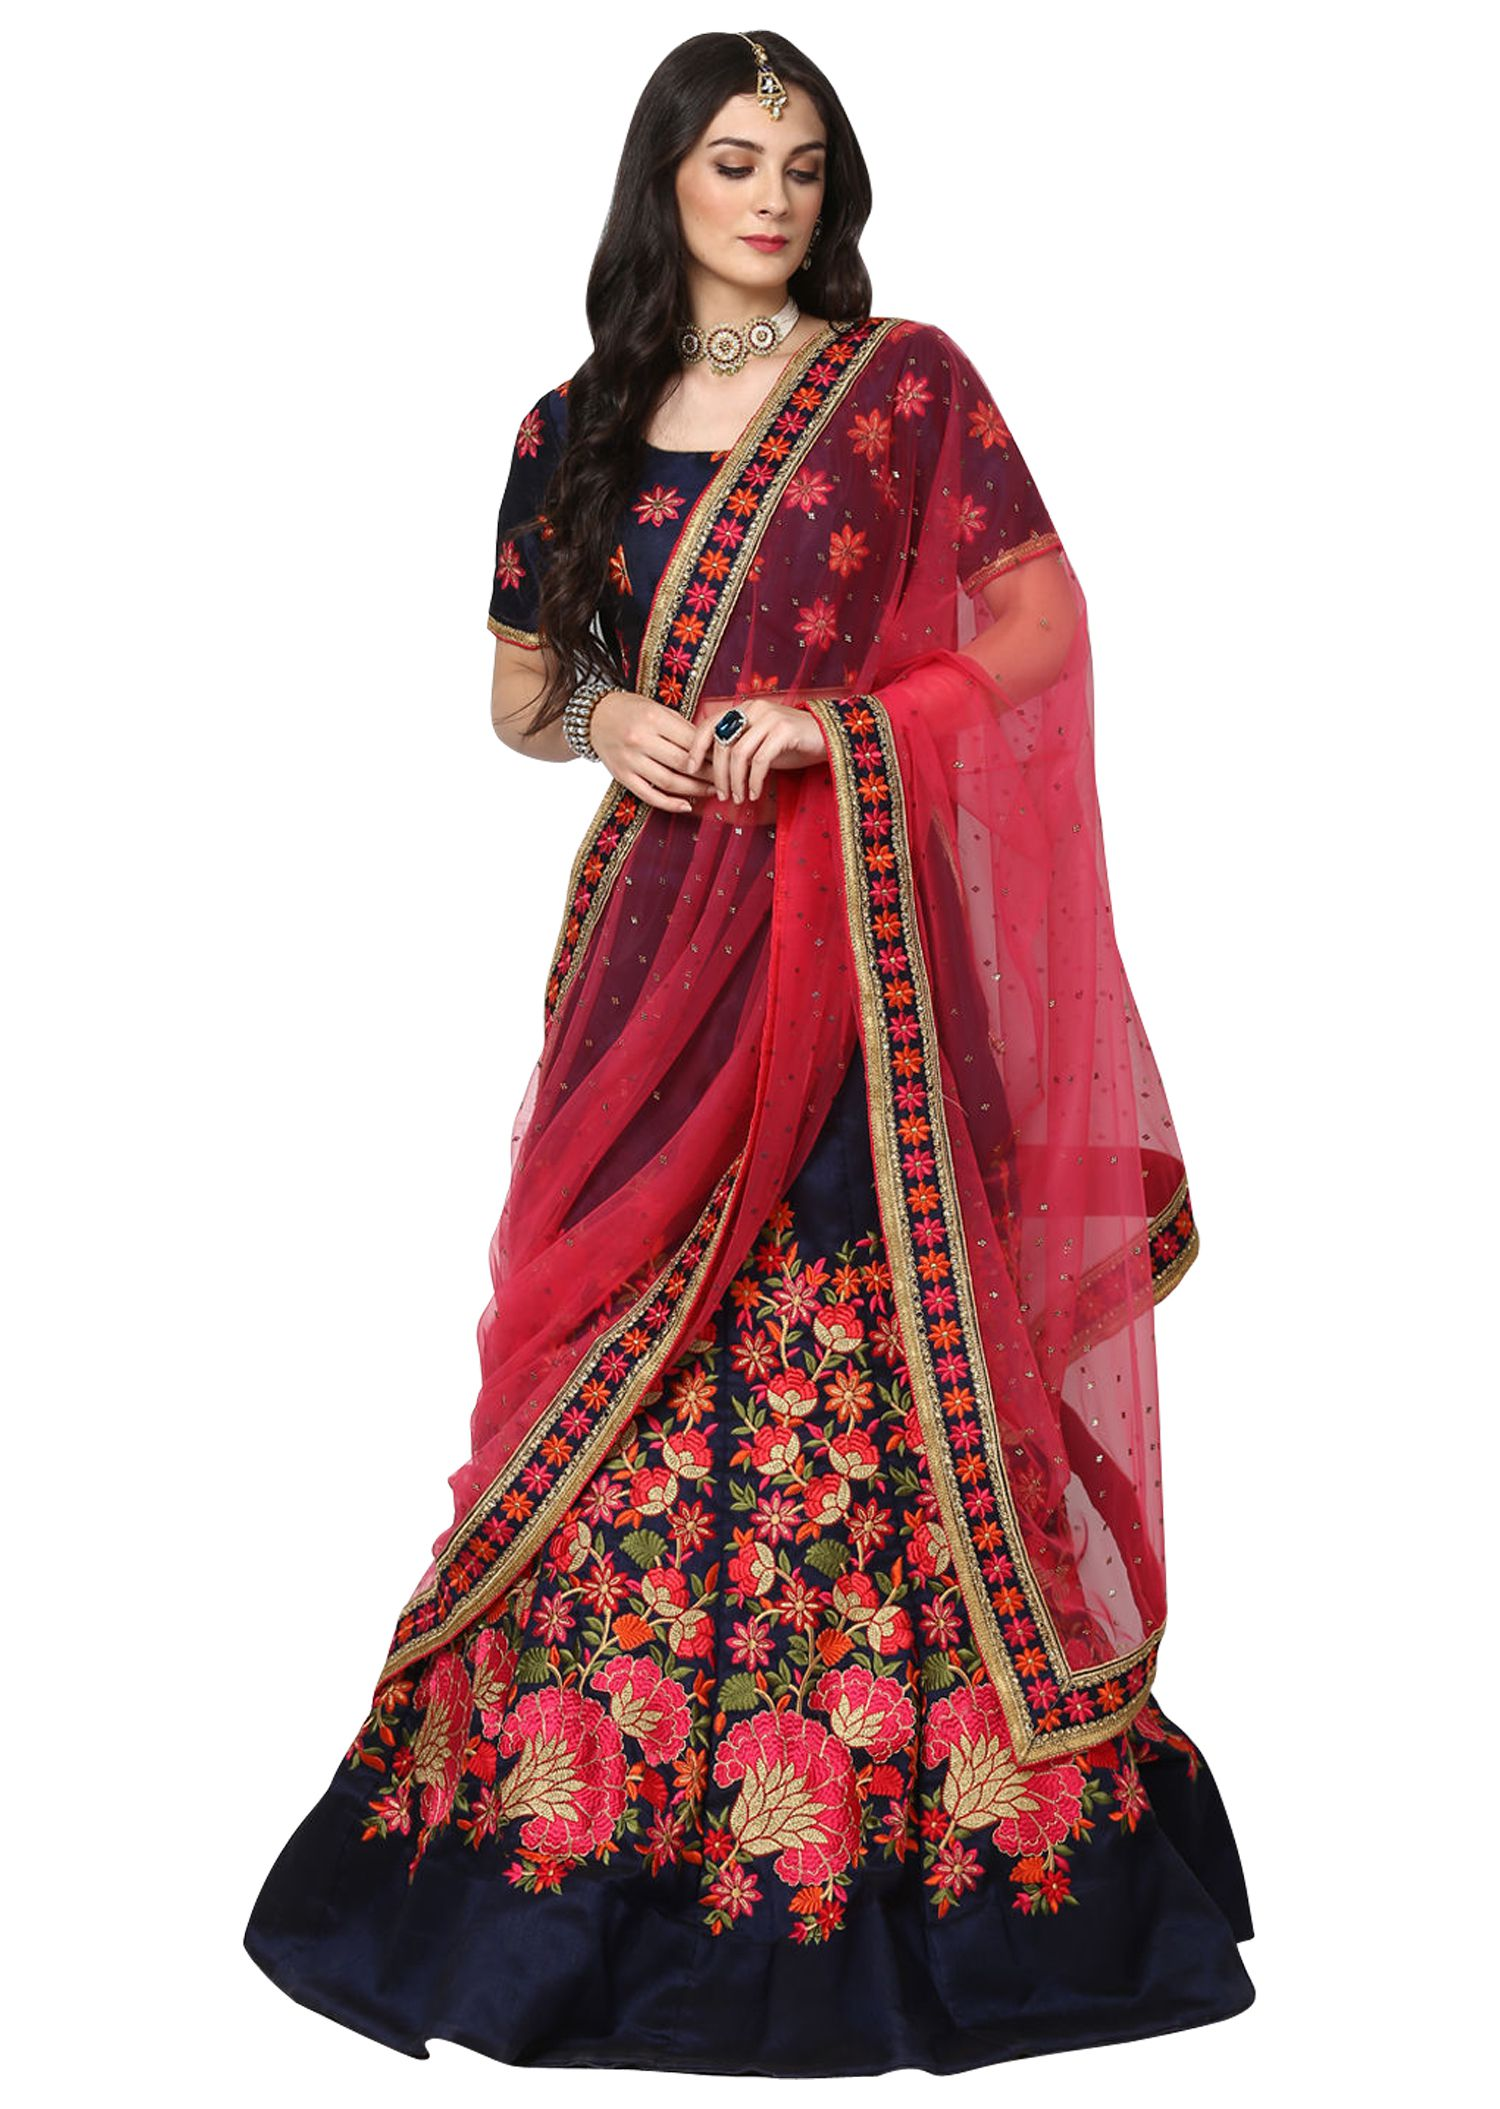 ff9e70a680 Fabron Red and Black Raw Silk A-line Semi Stitched Lehenga - Buy Fabron Red  and Black Raw Silk A-line Semi Stitched Lehenga Online at Best Prices in  India ...